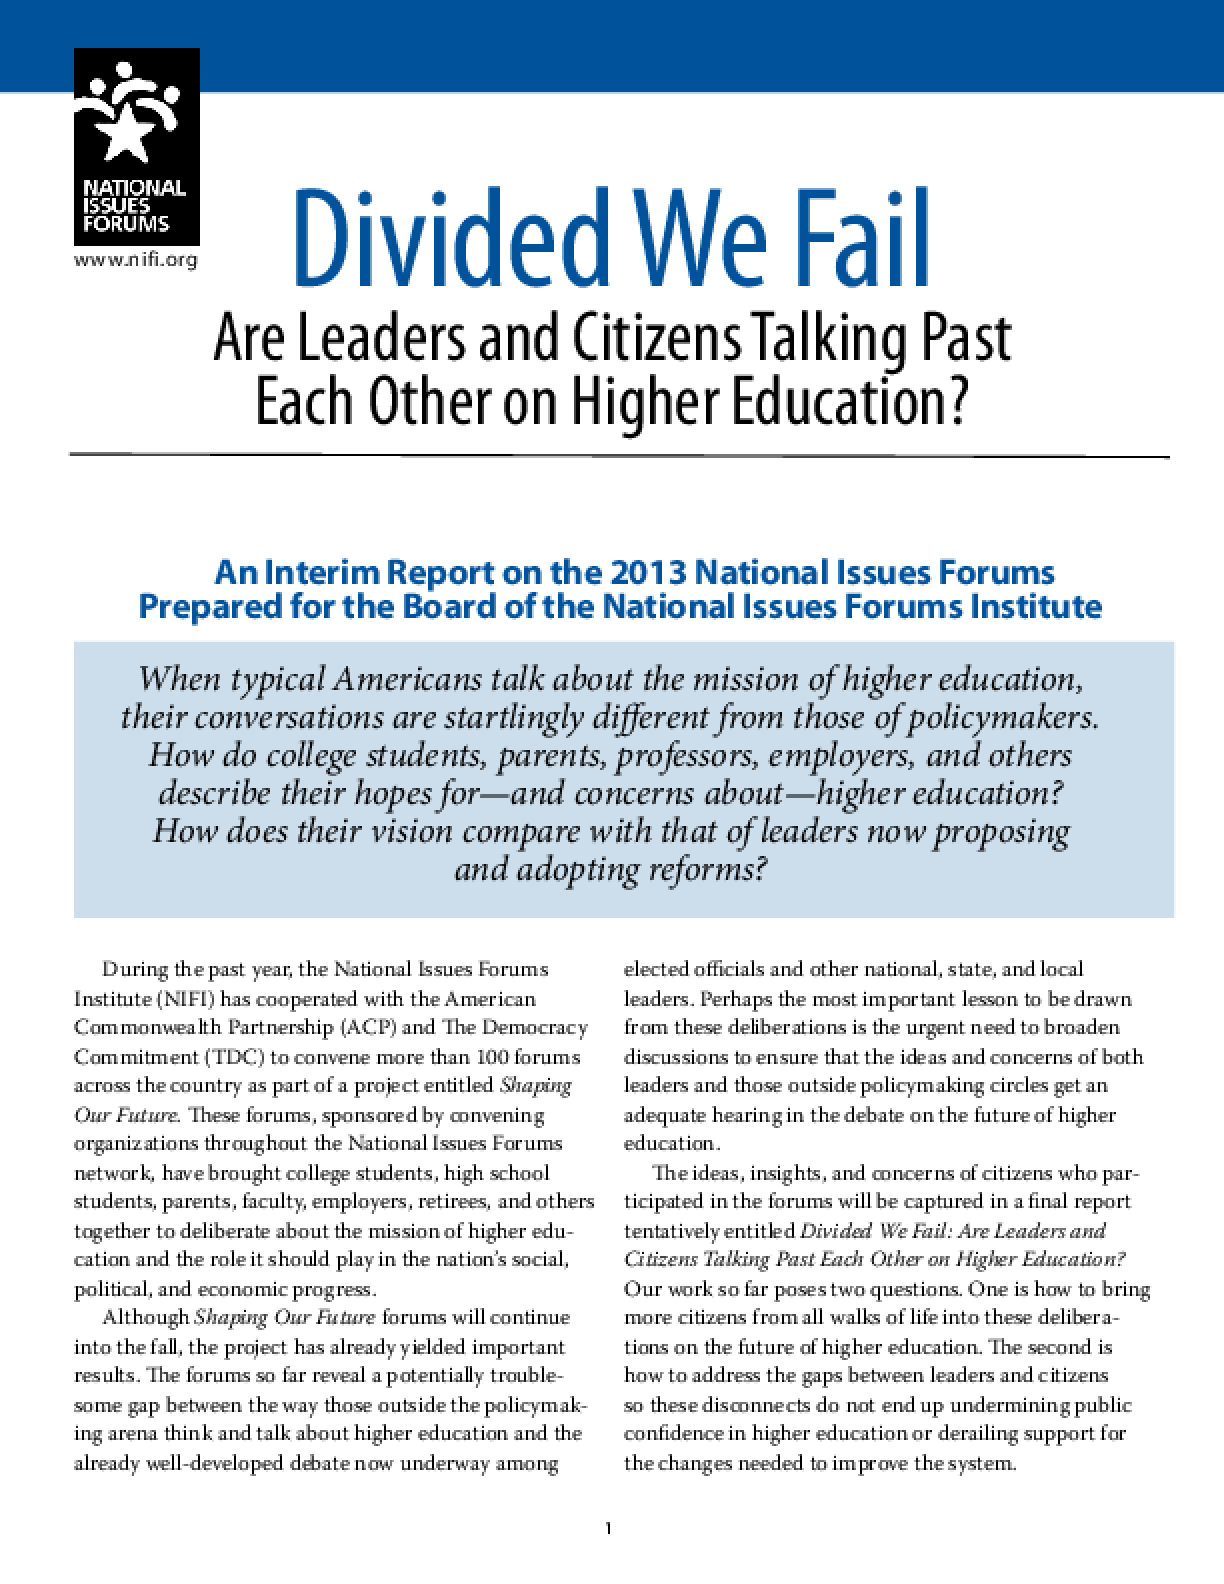 Divided We Fail: Are Leaders and Citizens Talking Past Each Other on Higher Education? (Interim Report)